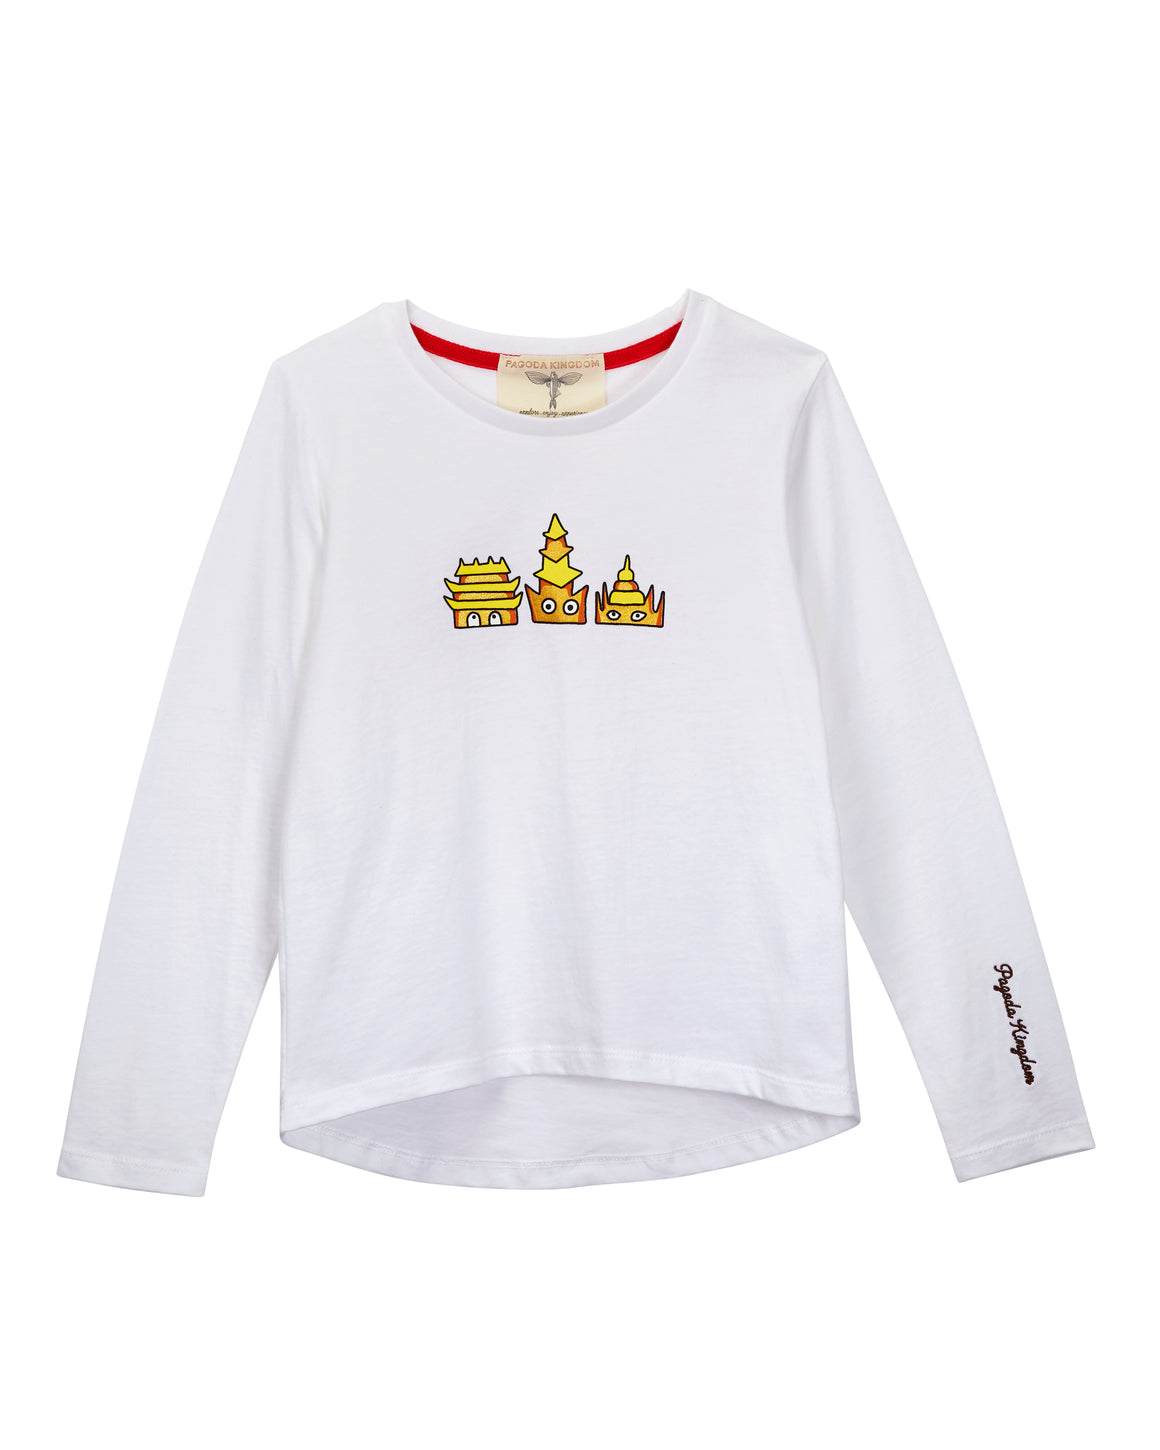 Golden Pagodas Printed T-Shirt White